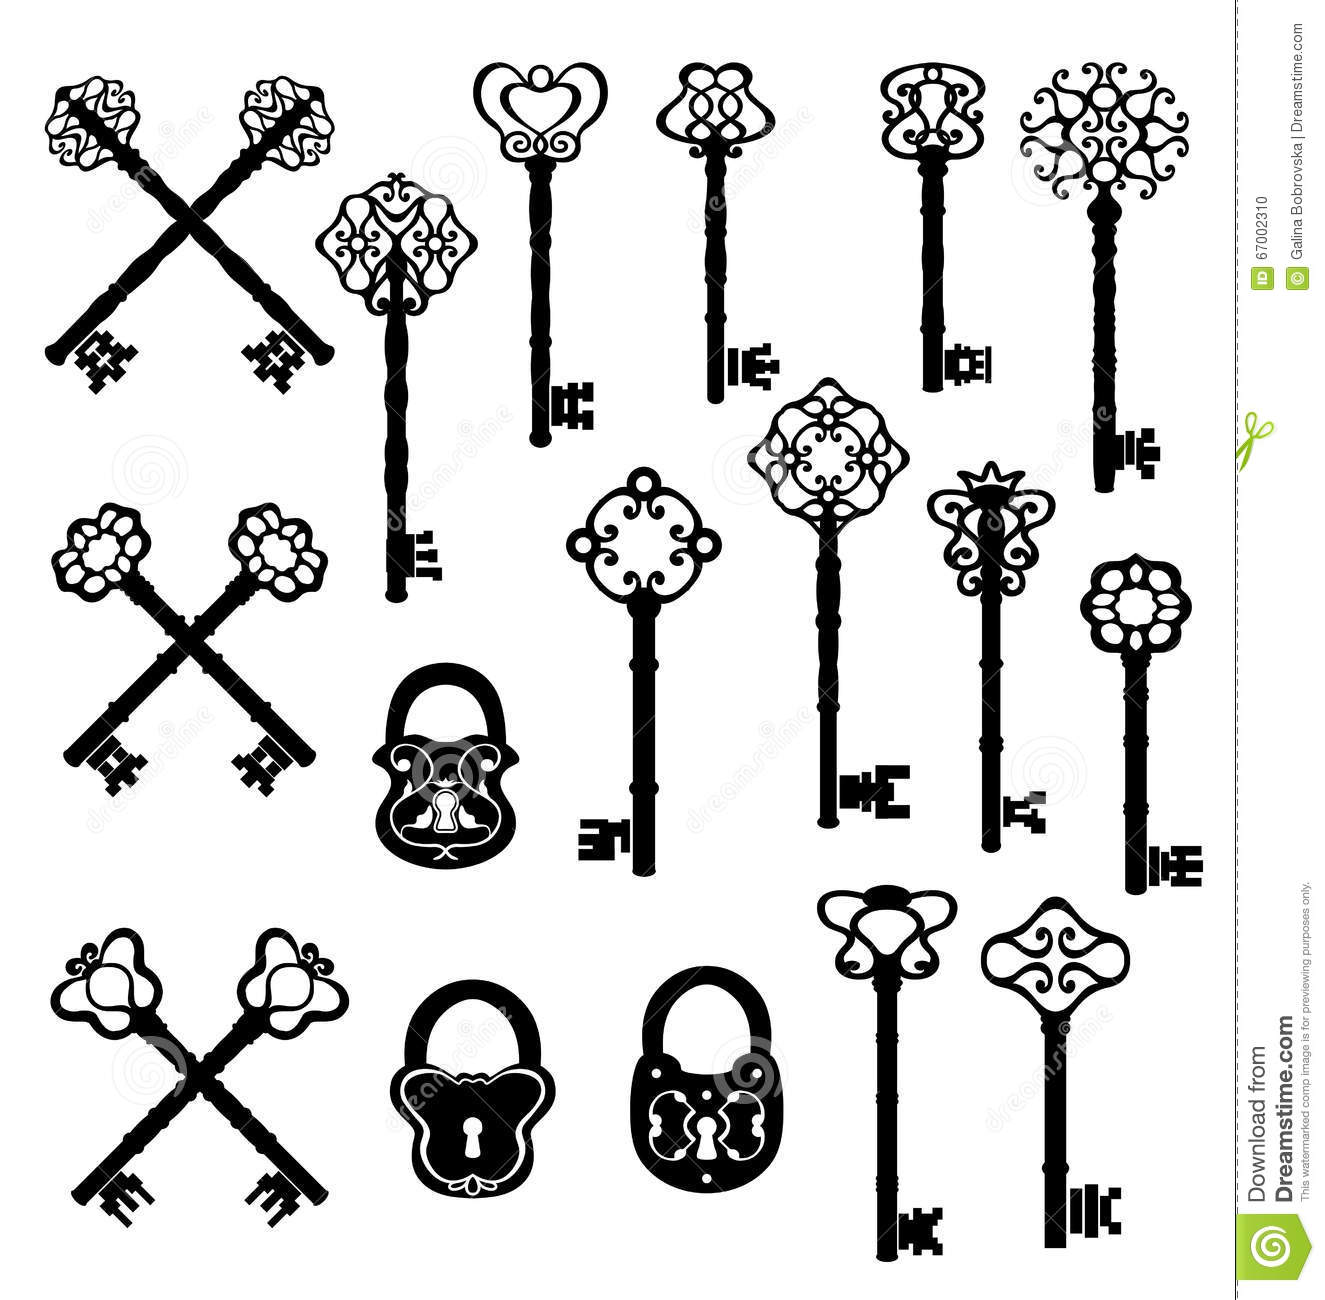 Vintage Keys And Lock Set Vector Design Stock Vector